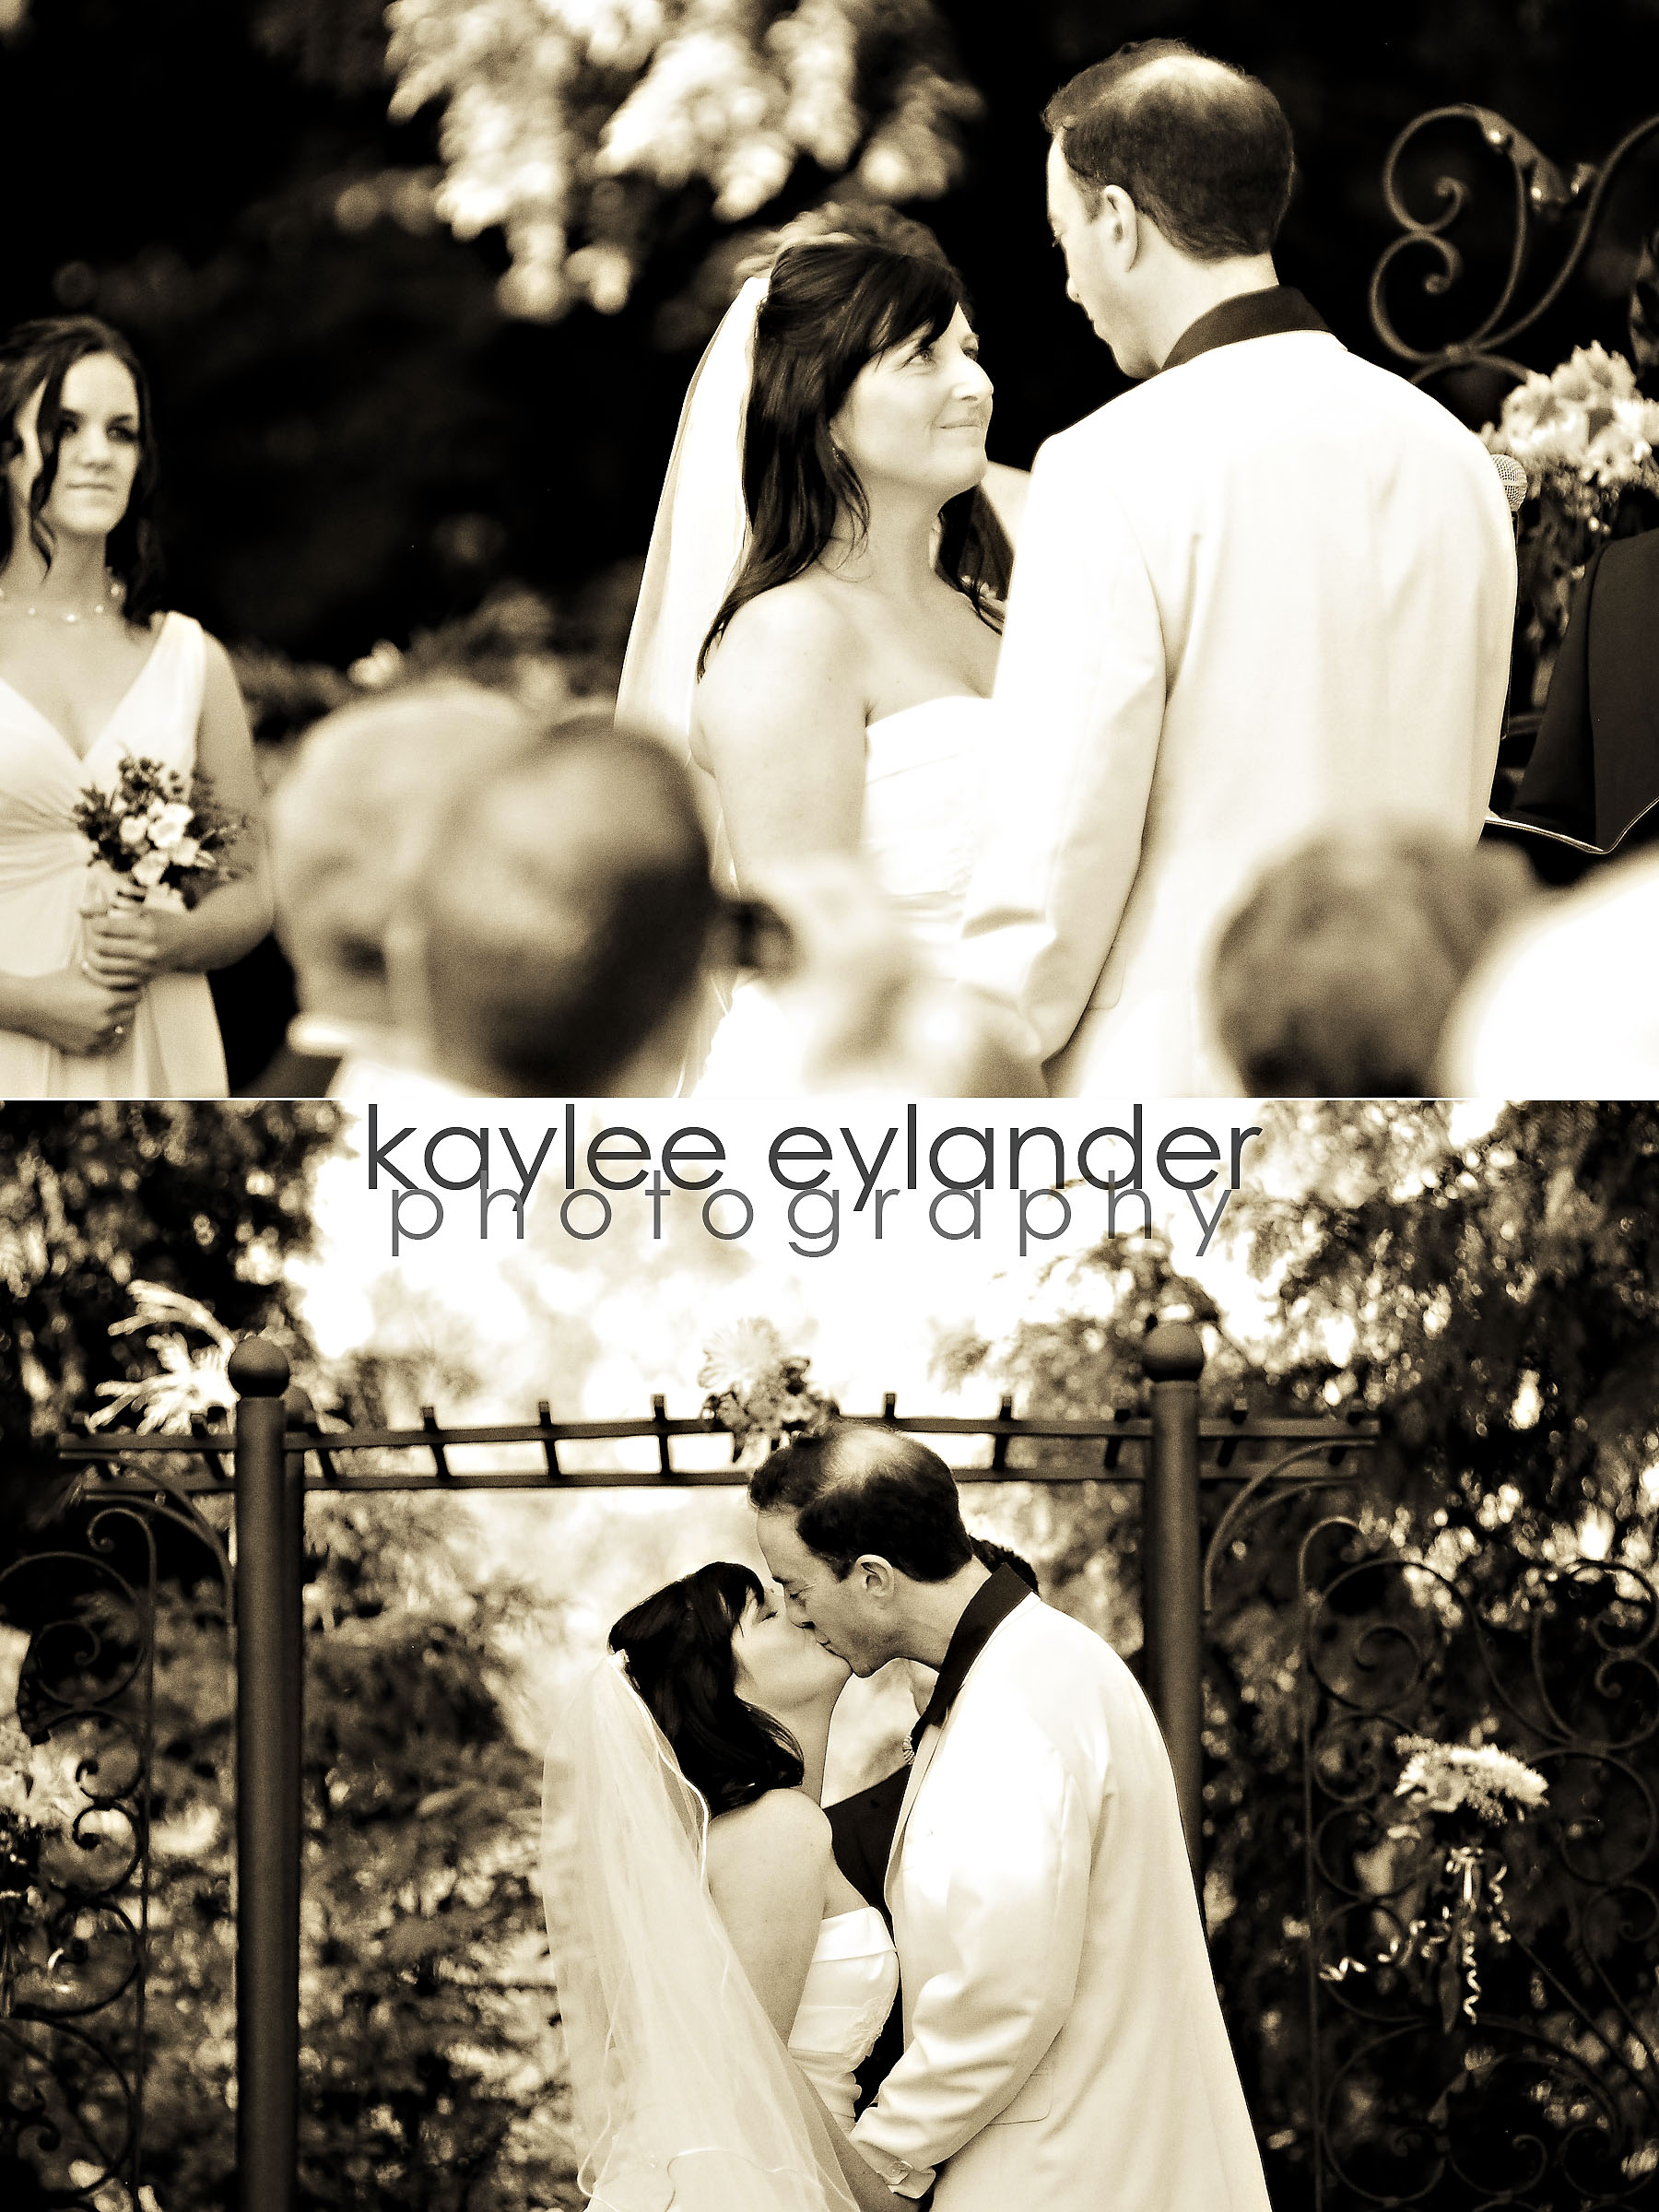 Ceremony 4 DIY Modern Vintage Wedding....gotta love it! | Kaylee Eylander Photography